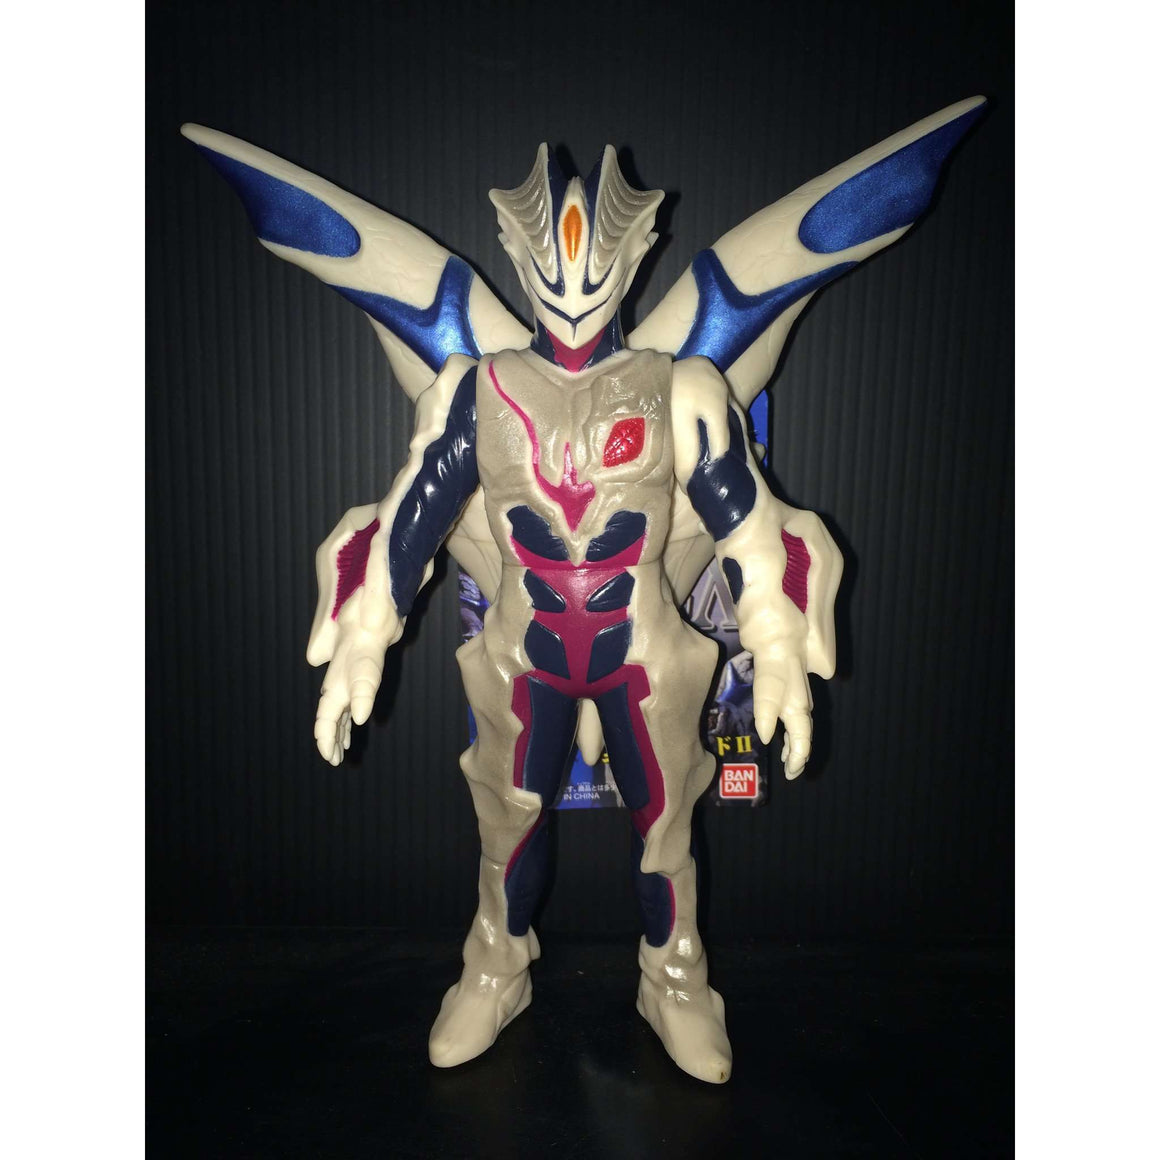 CSTOYS INTERNATIONAL:[EX40] Ultra Monster Series EX Kyeloid 2